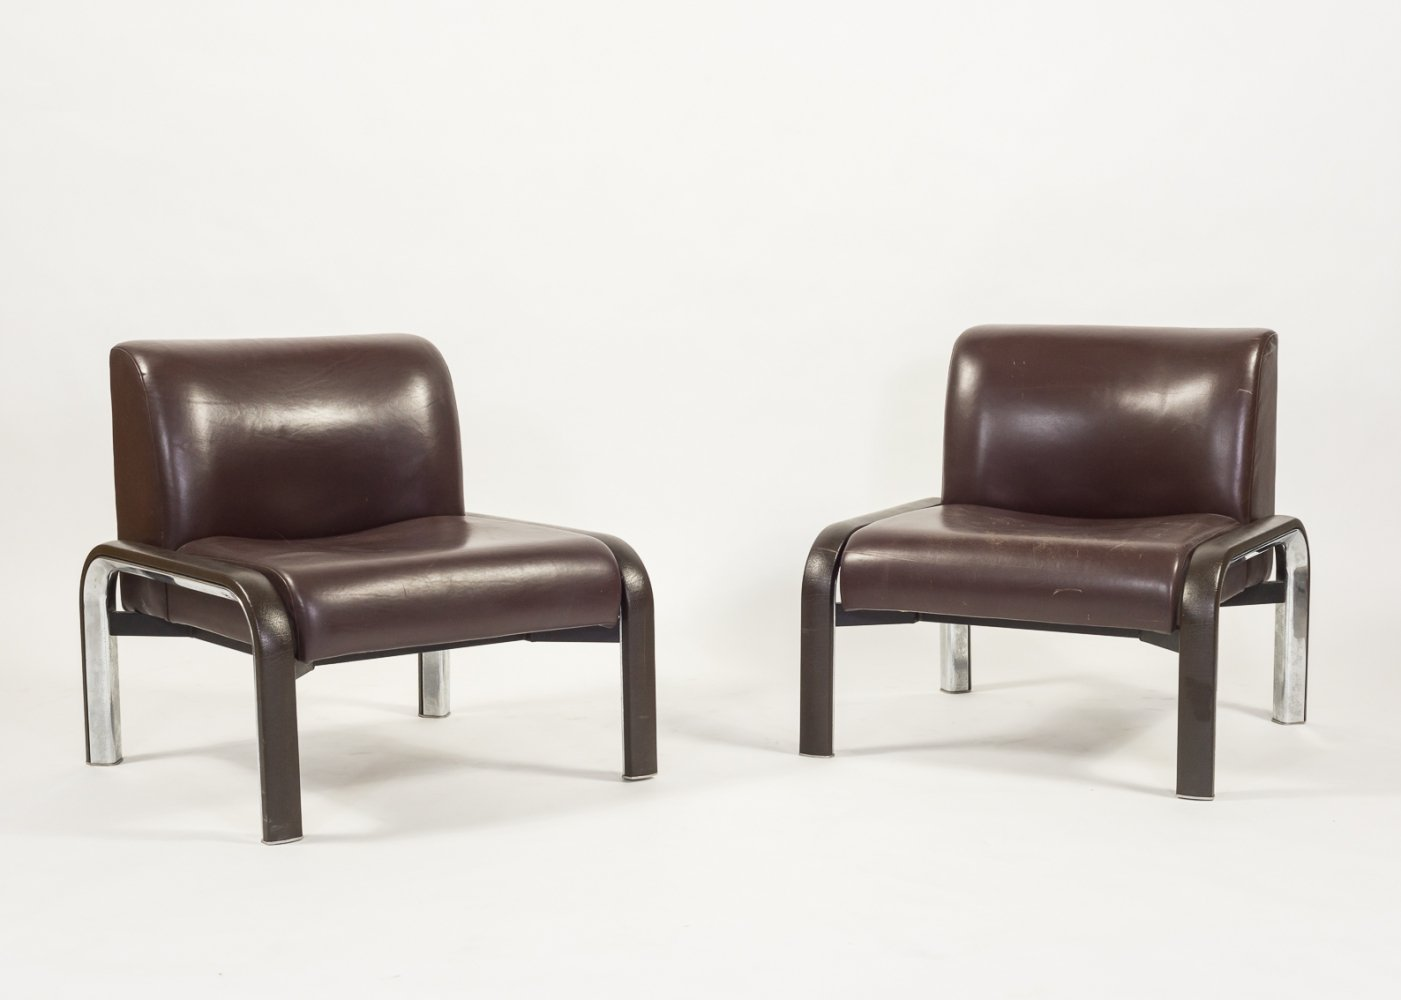 Modern Italian design lounge chairs in brown leather